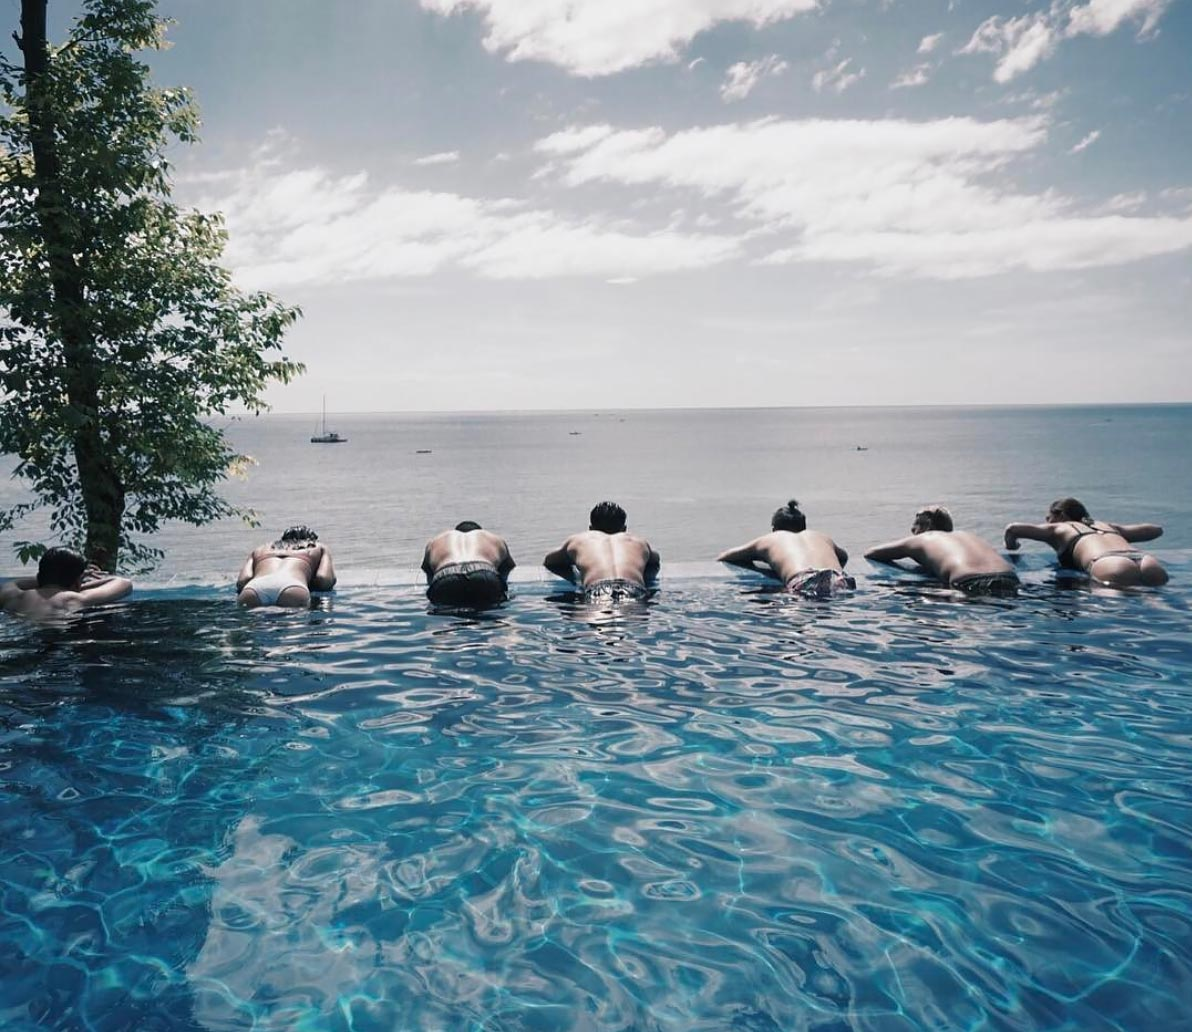 With their friends at the infinity pool